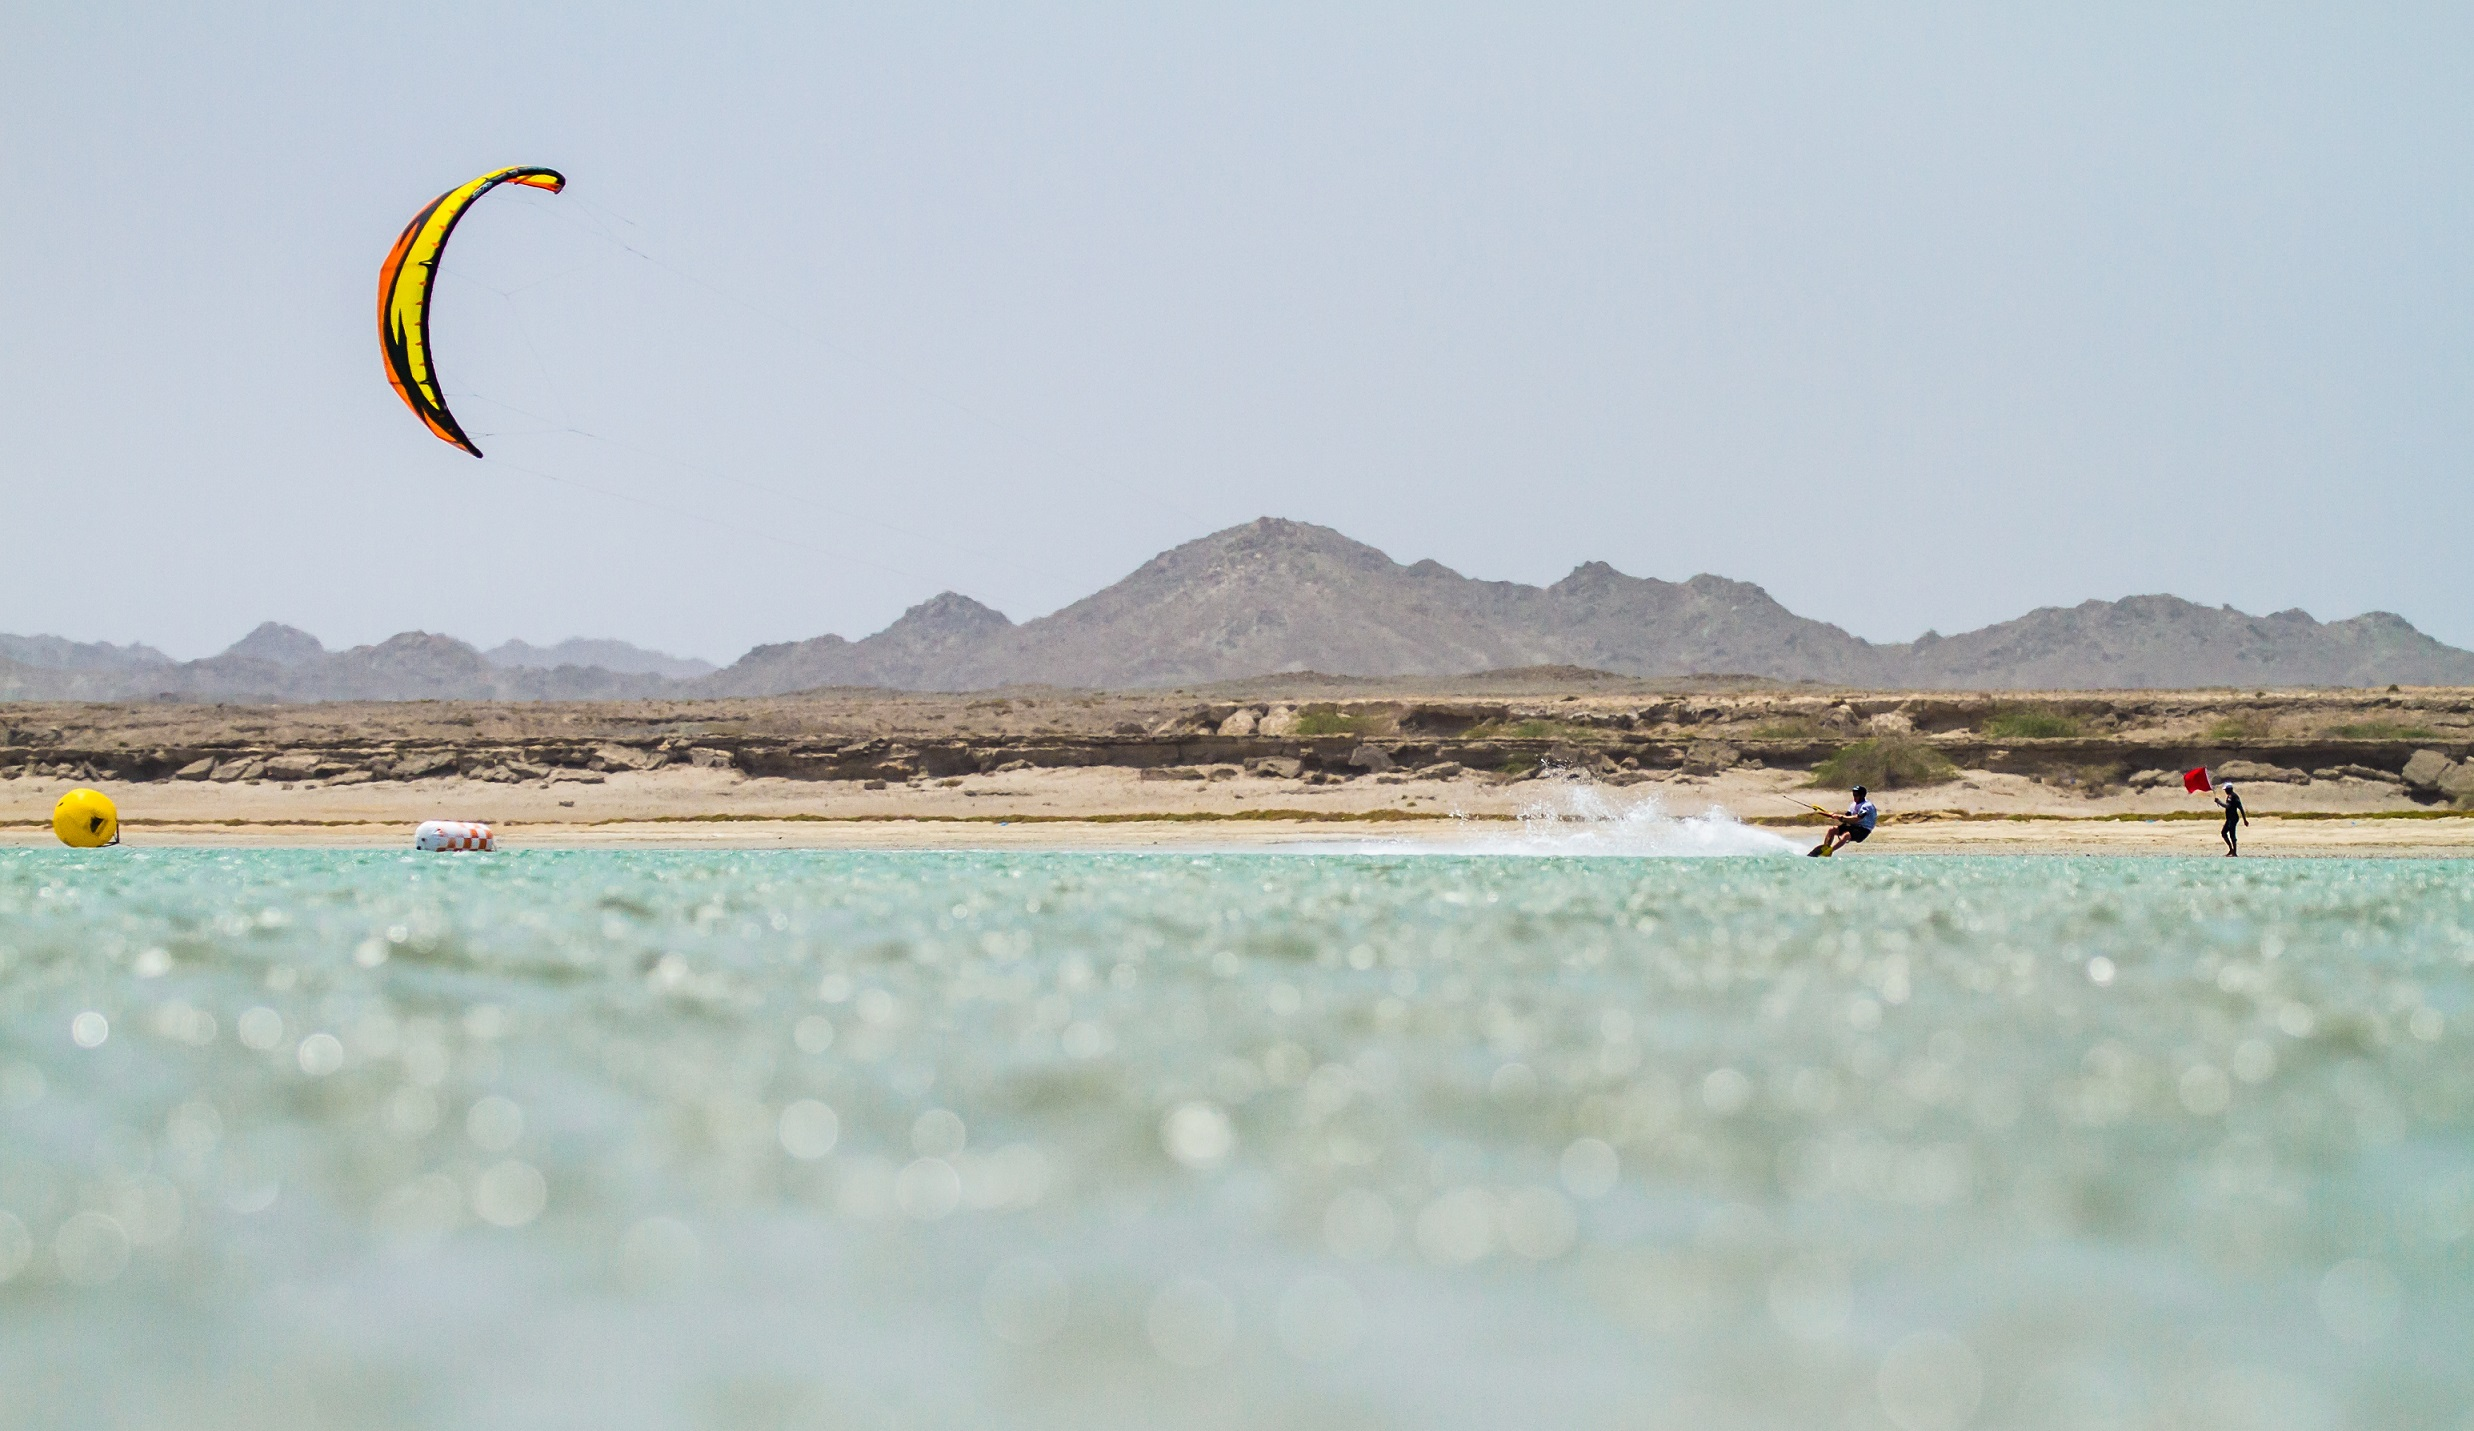 Kite championship in Masirah Island